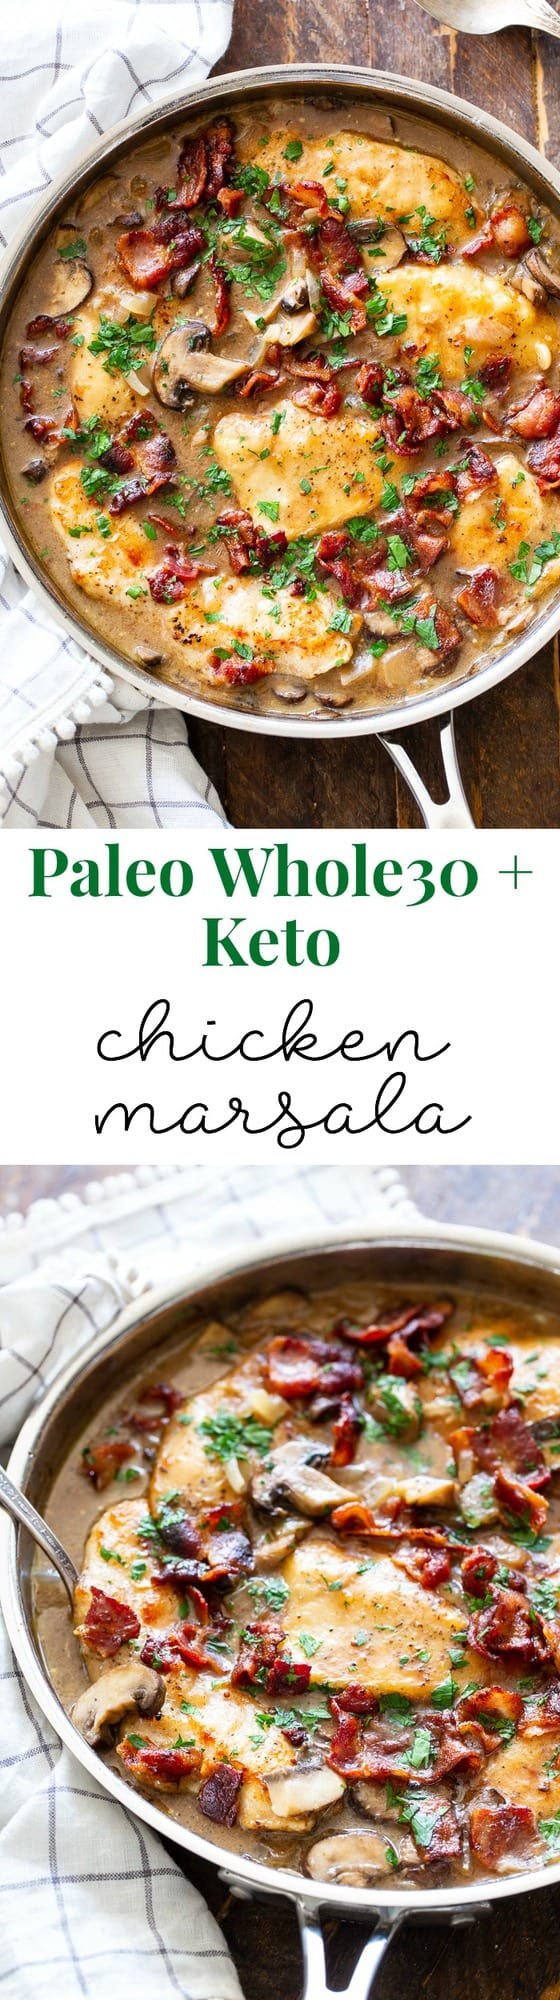 This one-skillet paleo chicken marsala is loaded with flavor!  Juicy chicken, a creamy mushroom sauce and crispy, savory bacon make this a recipe you'll want in your dinner rotation!  It's dairy-free, gluten-free, Paleo, and Whole30 compliant.